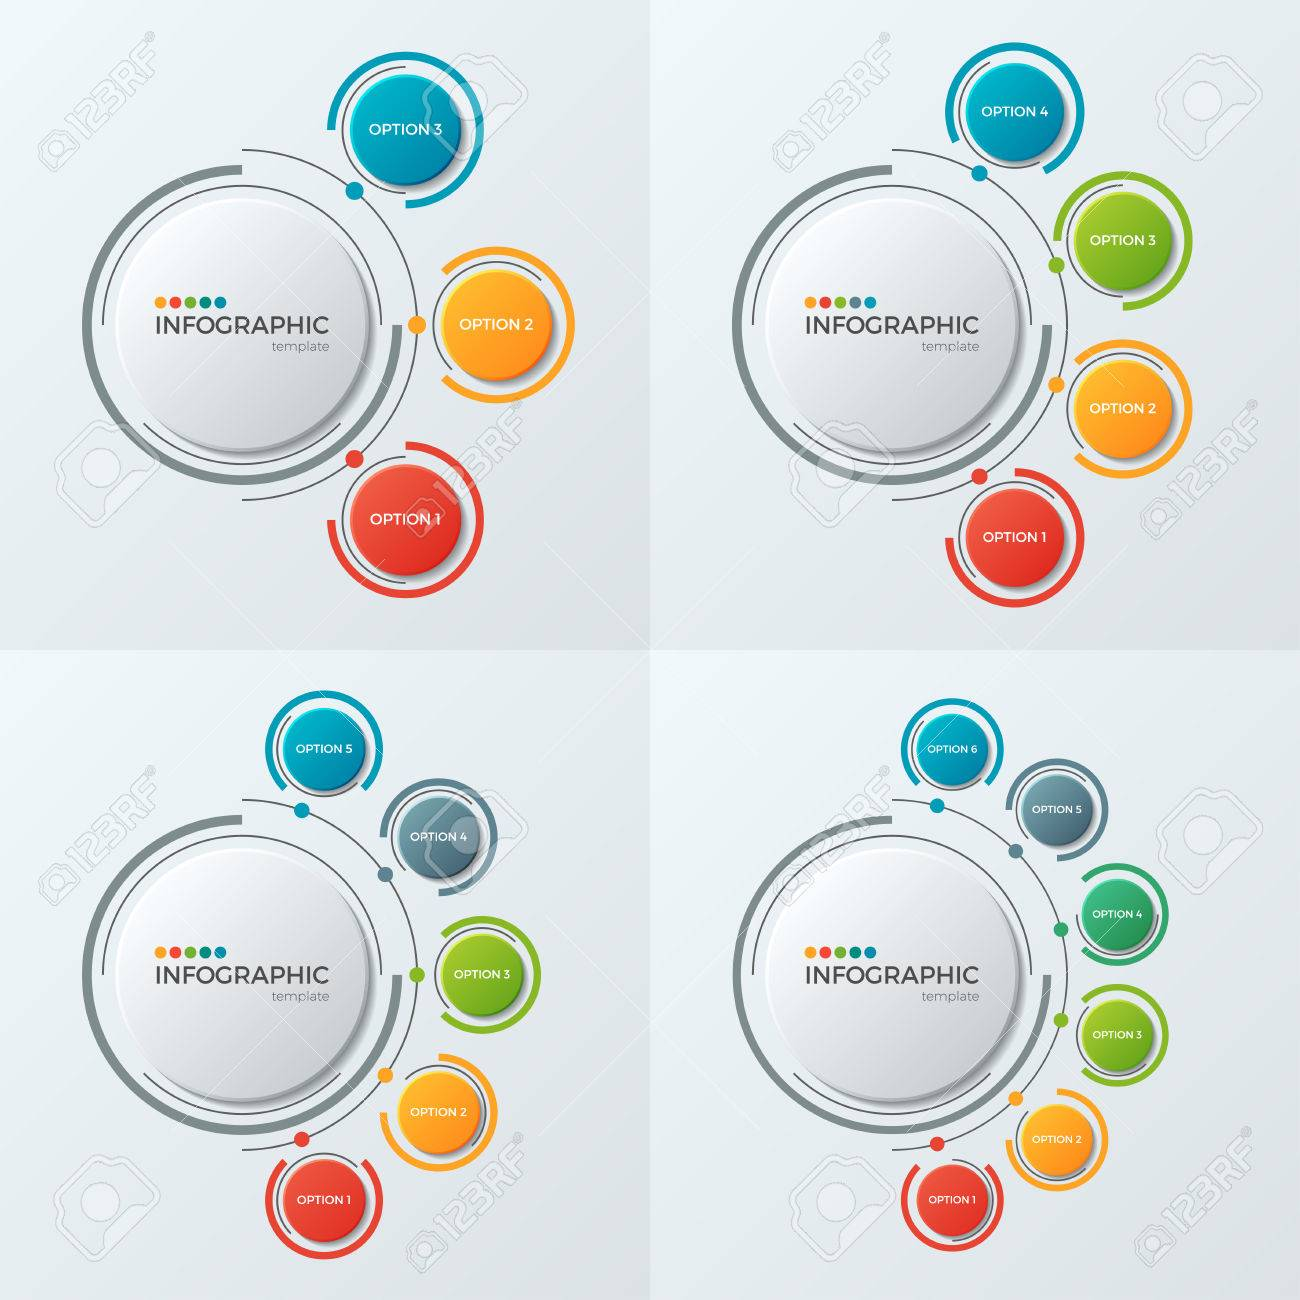 Circle chart infographic templates with 3-6 options for presenta - 83886815